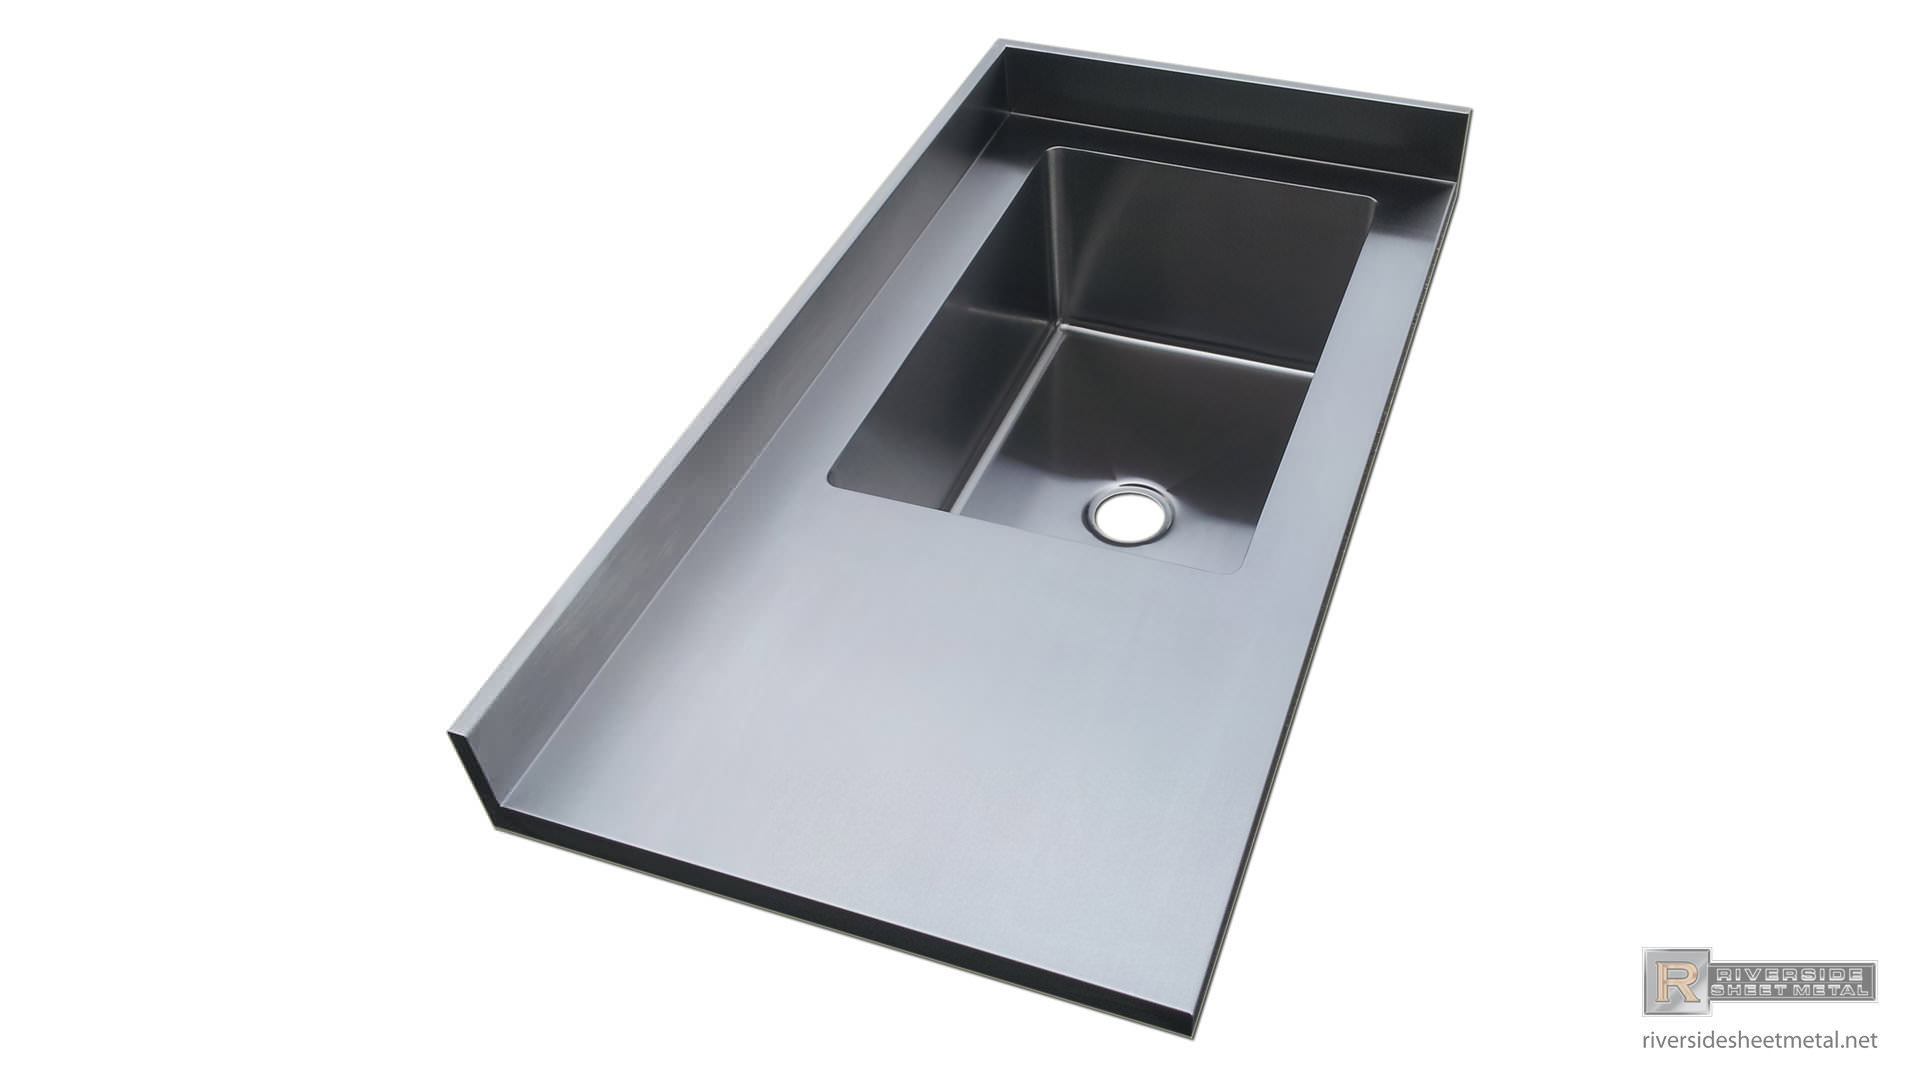 Stainless Steel Sink With Counter : stainless steel counter tops 4 finish counter top with sink 4 finish ...